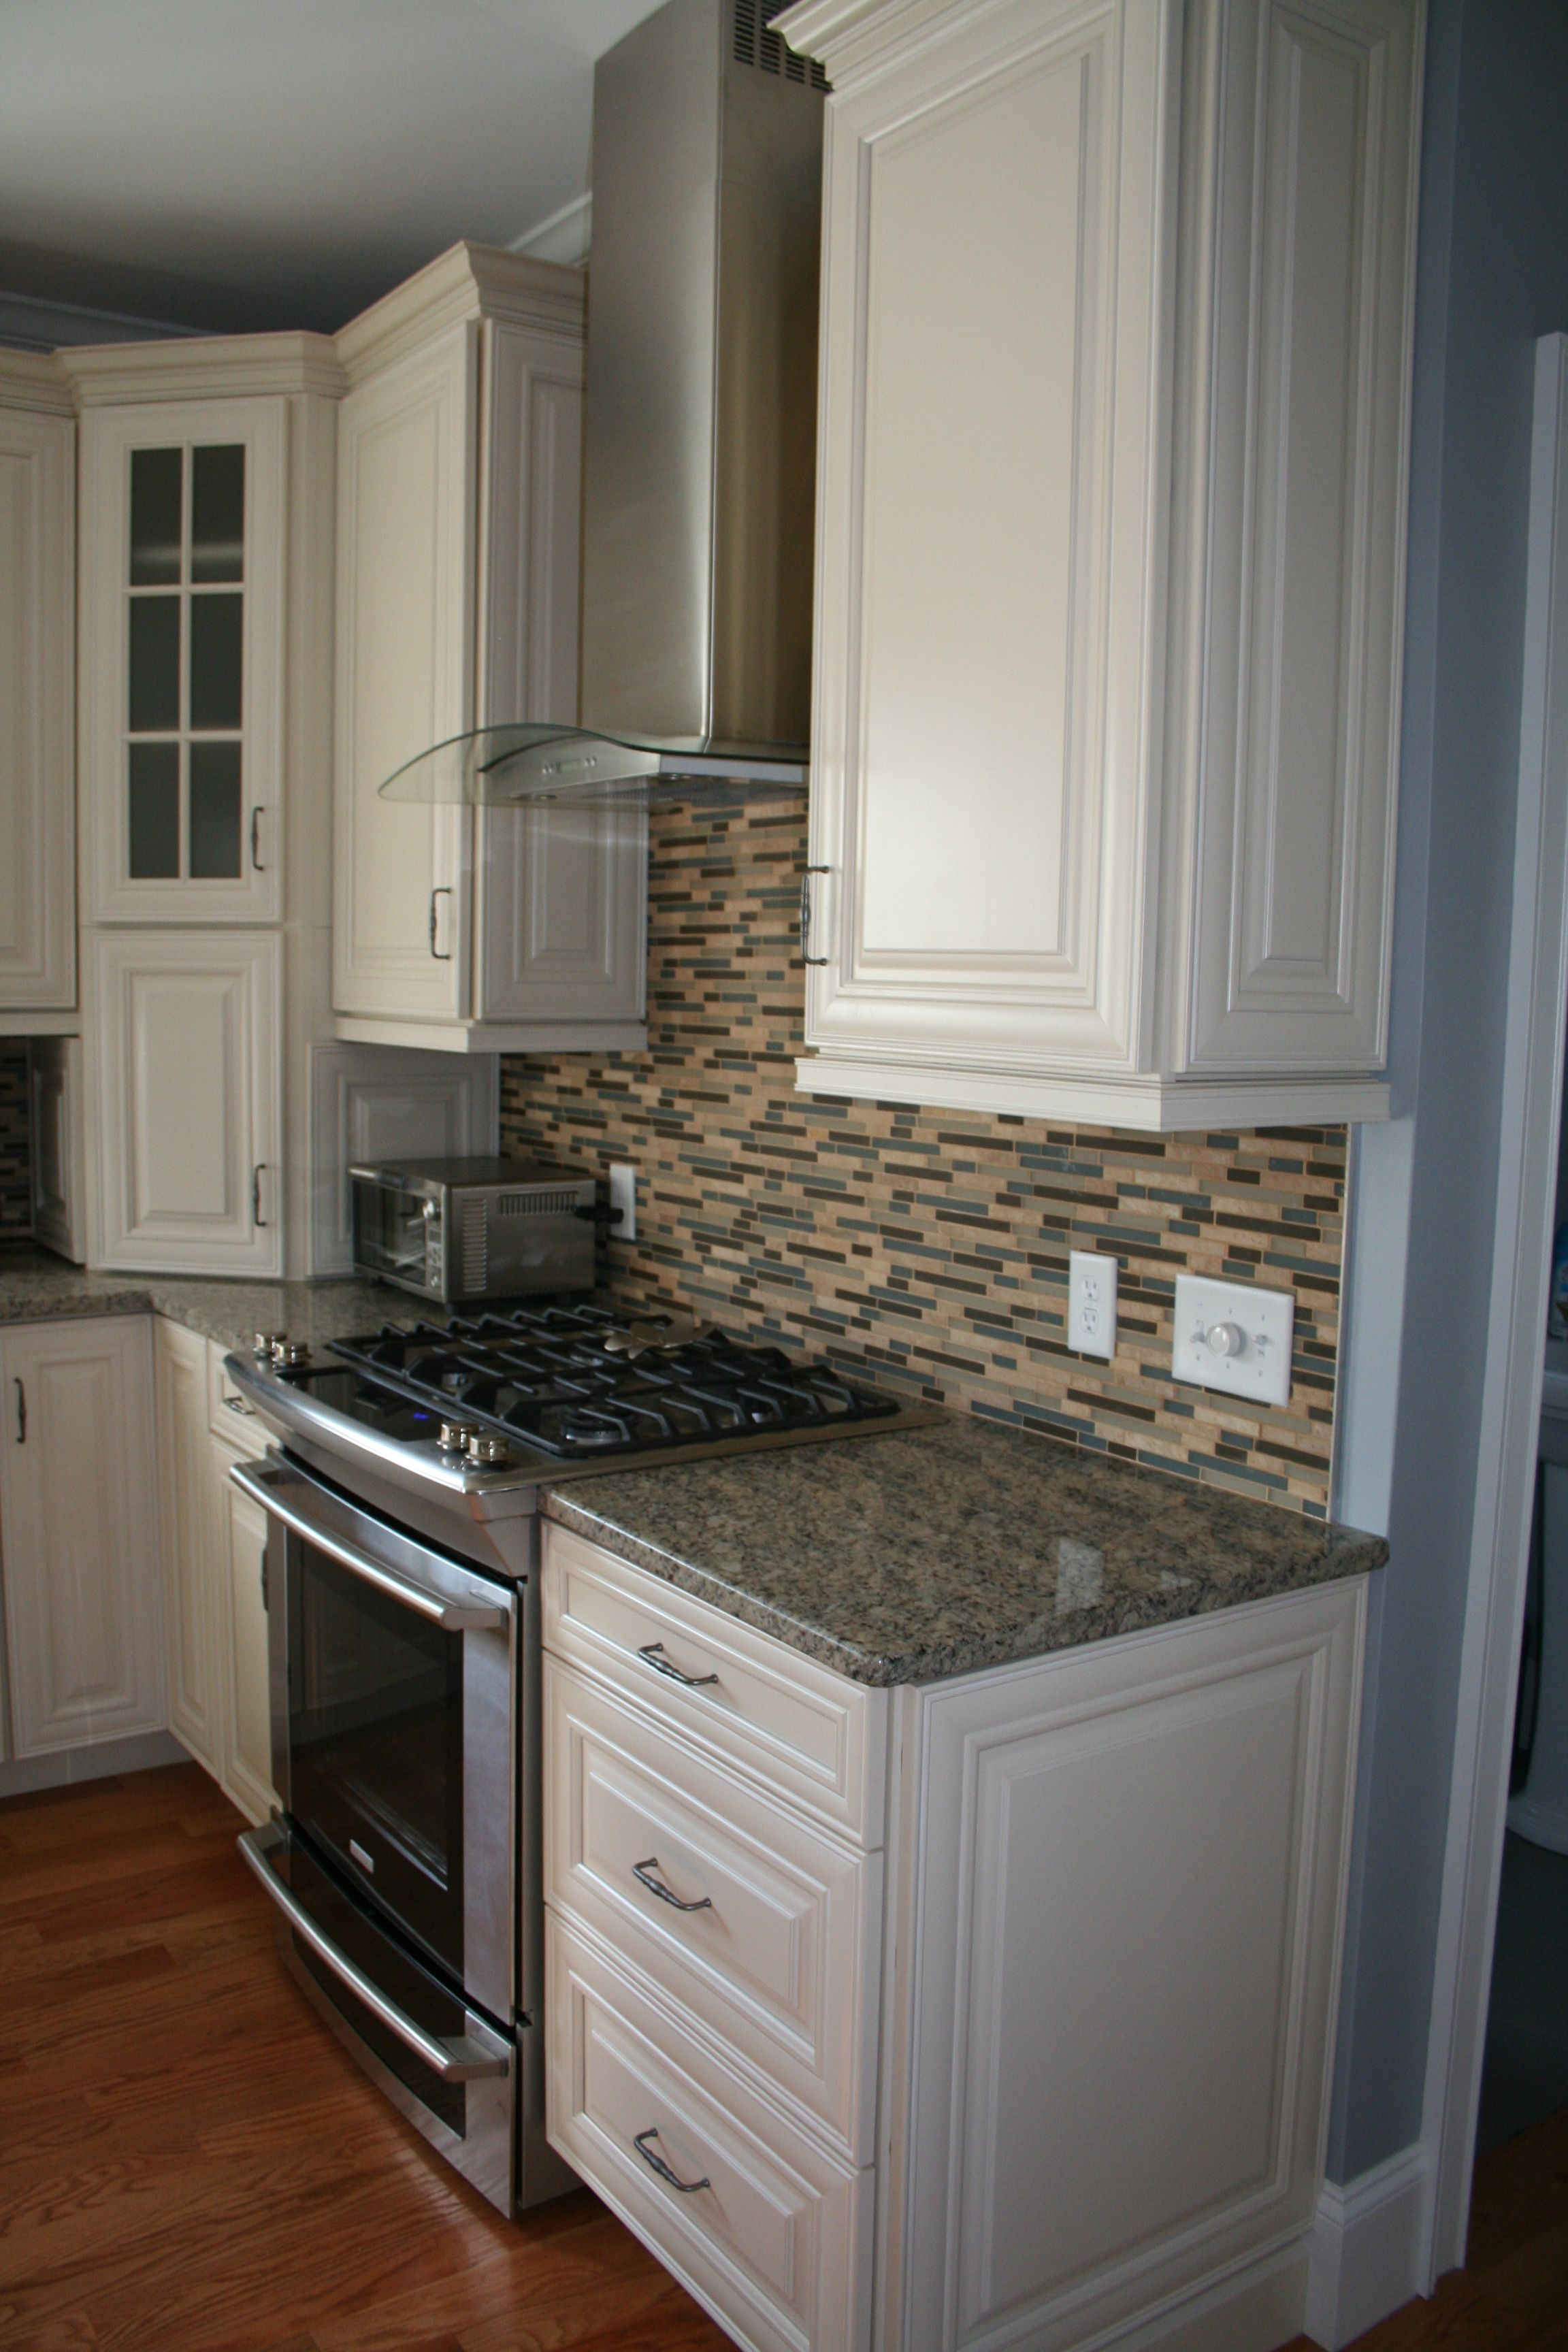 Waypoint Cabinetry in Maple cream featuring an appliance ...